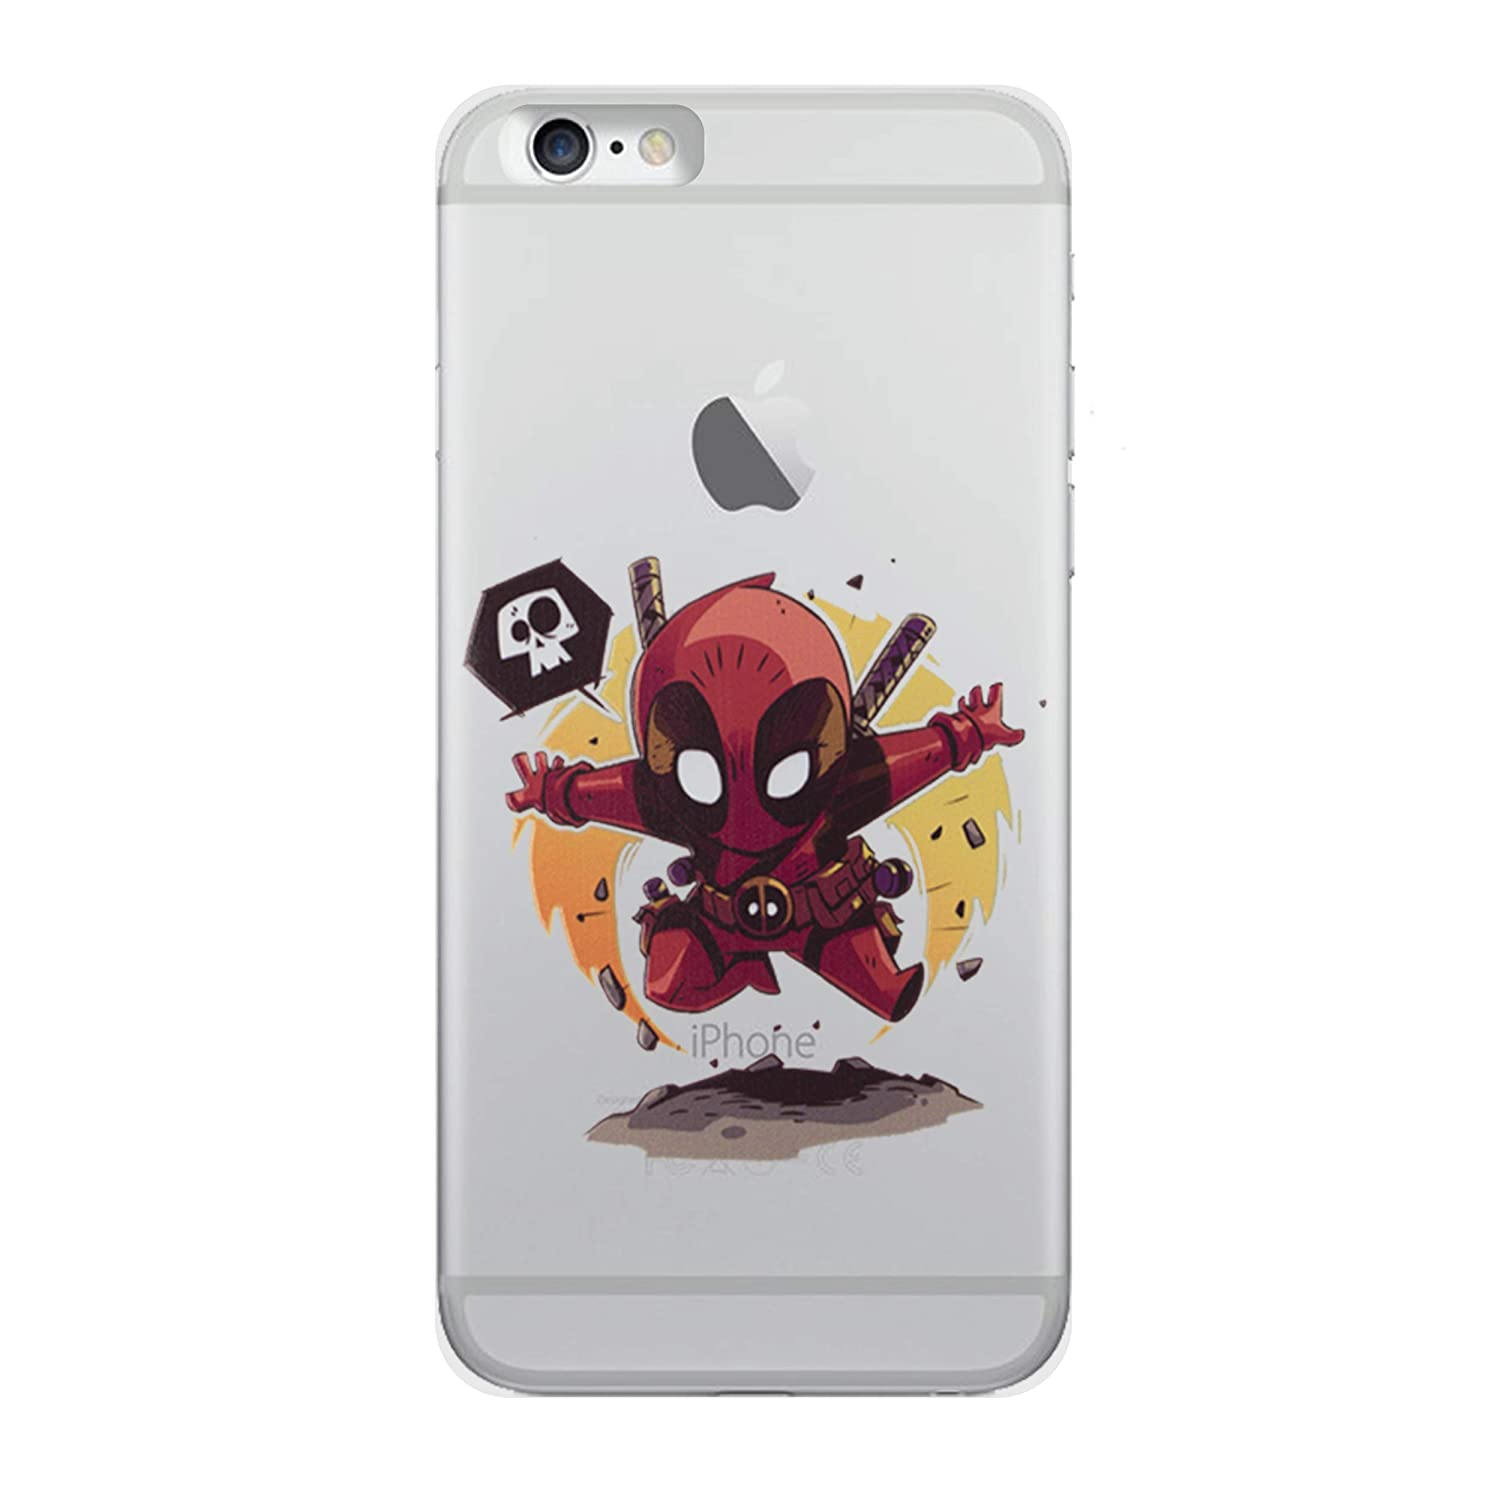 size 40 4cae5 896a2 iPhone 5/5s Deadpool Silicone Phone Case/Gel Cover for Apple iPhone 5s 5  SE/Screen Protector & Cloth/iCHOOSE / from The Grave